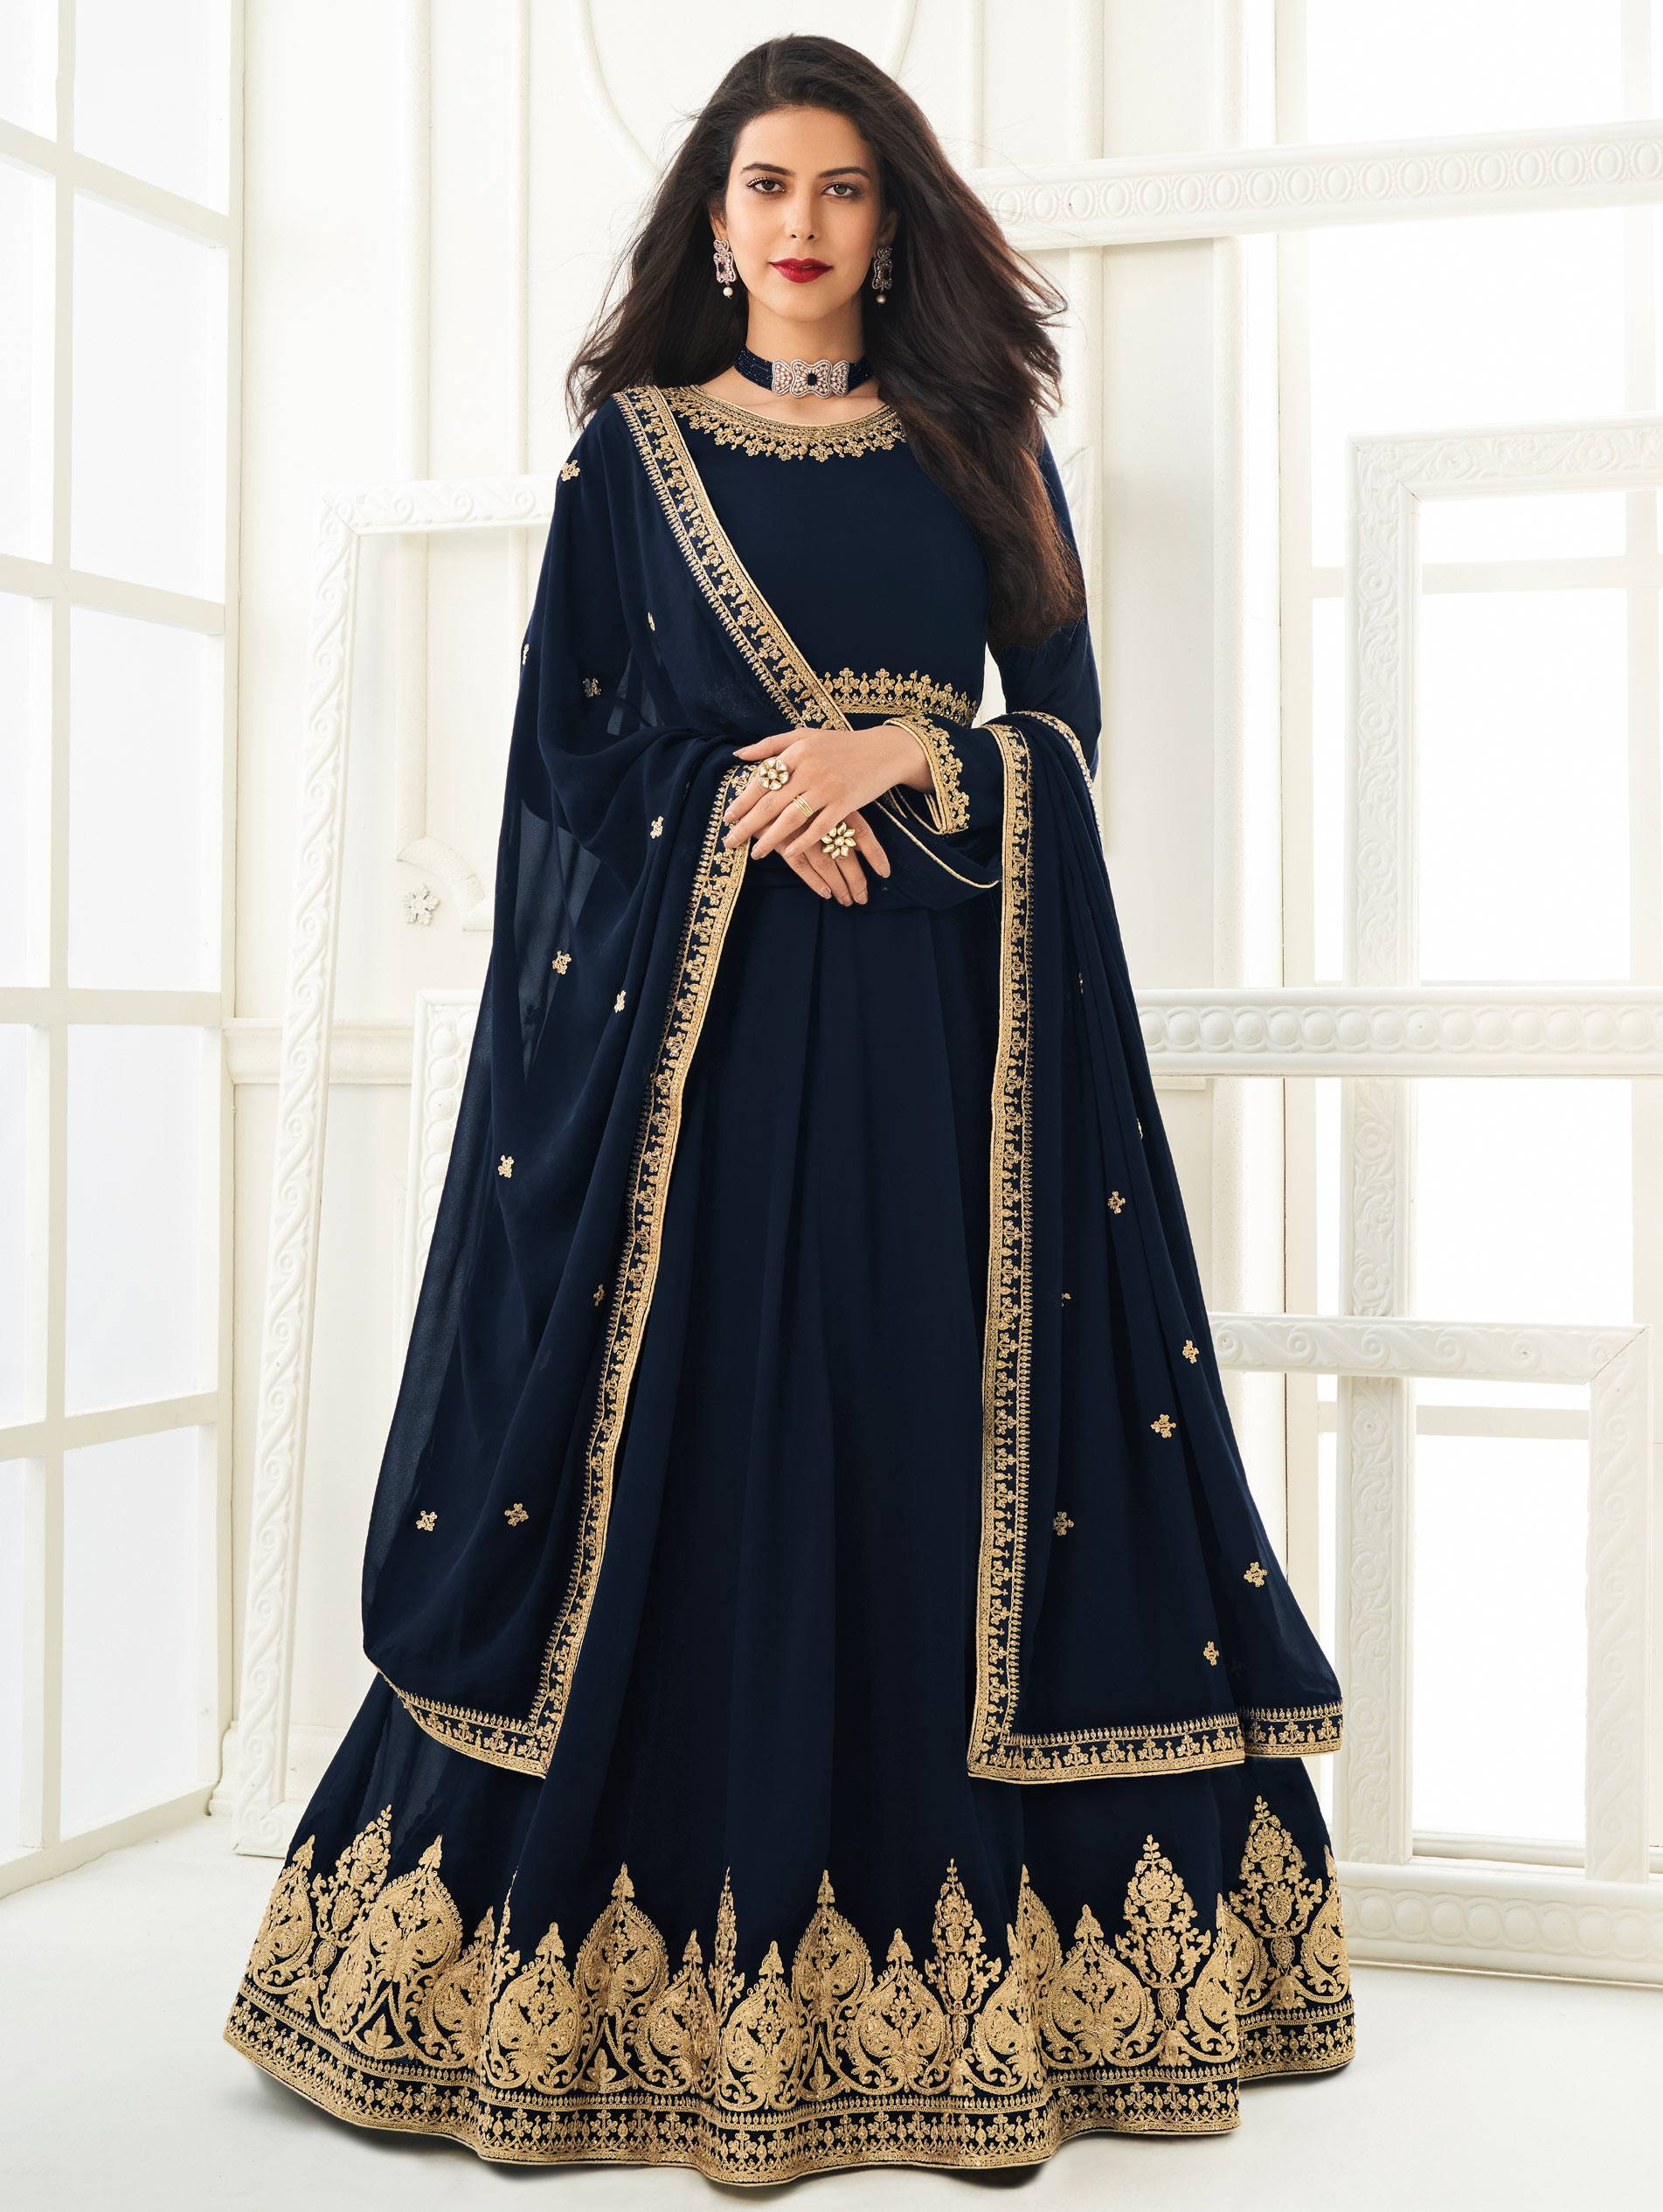 Royal Blue Wedding Gown for Women 2021